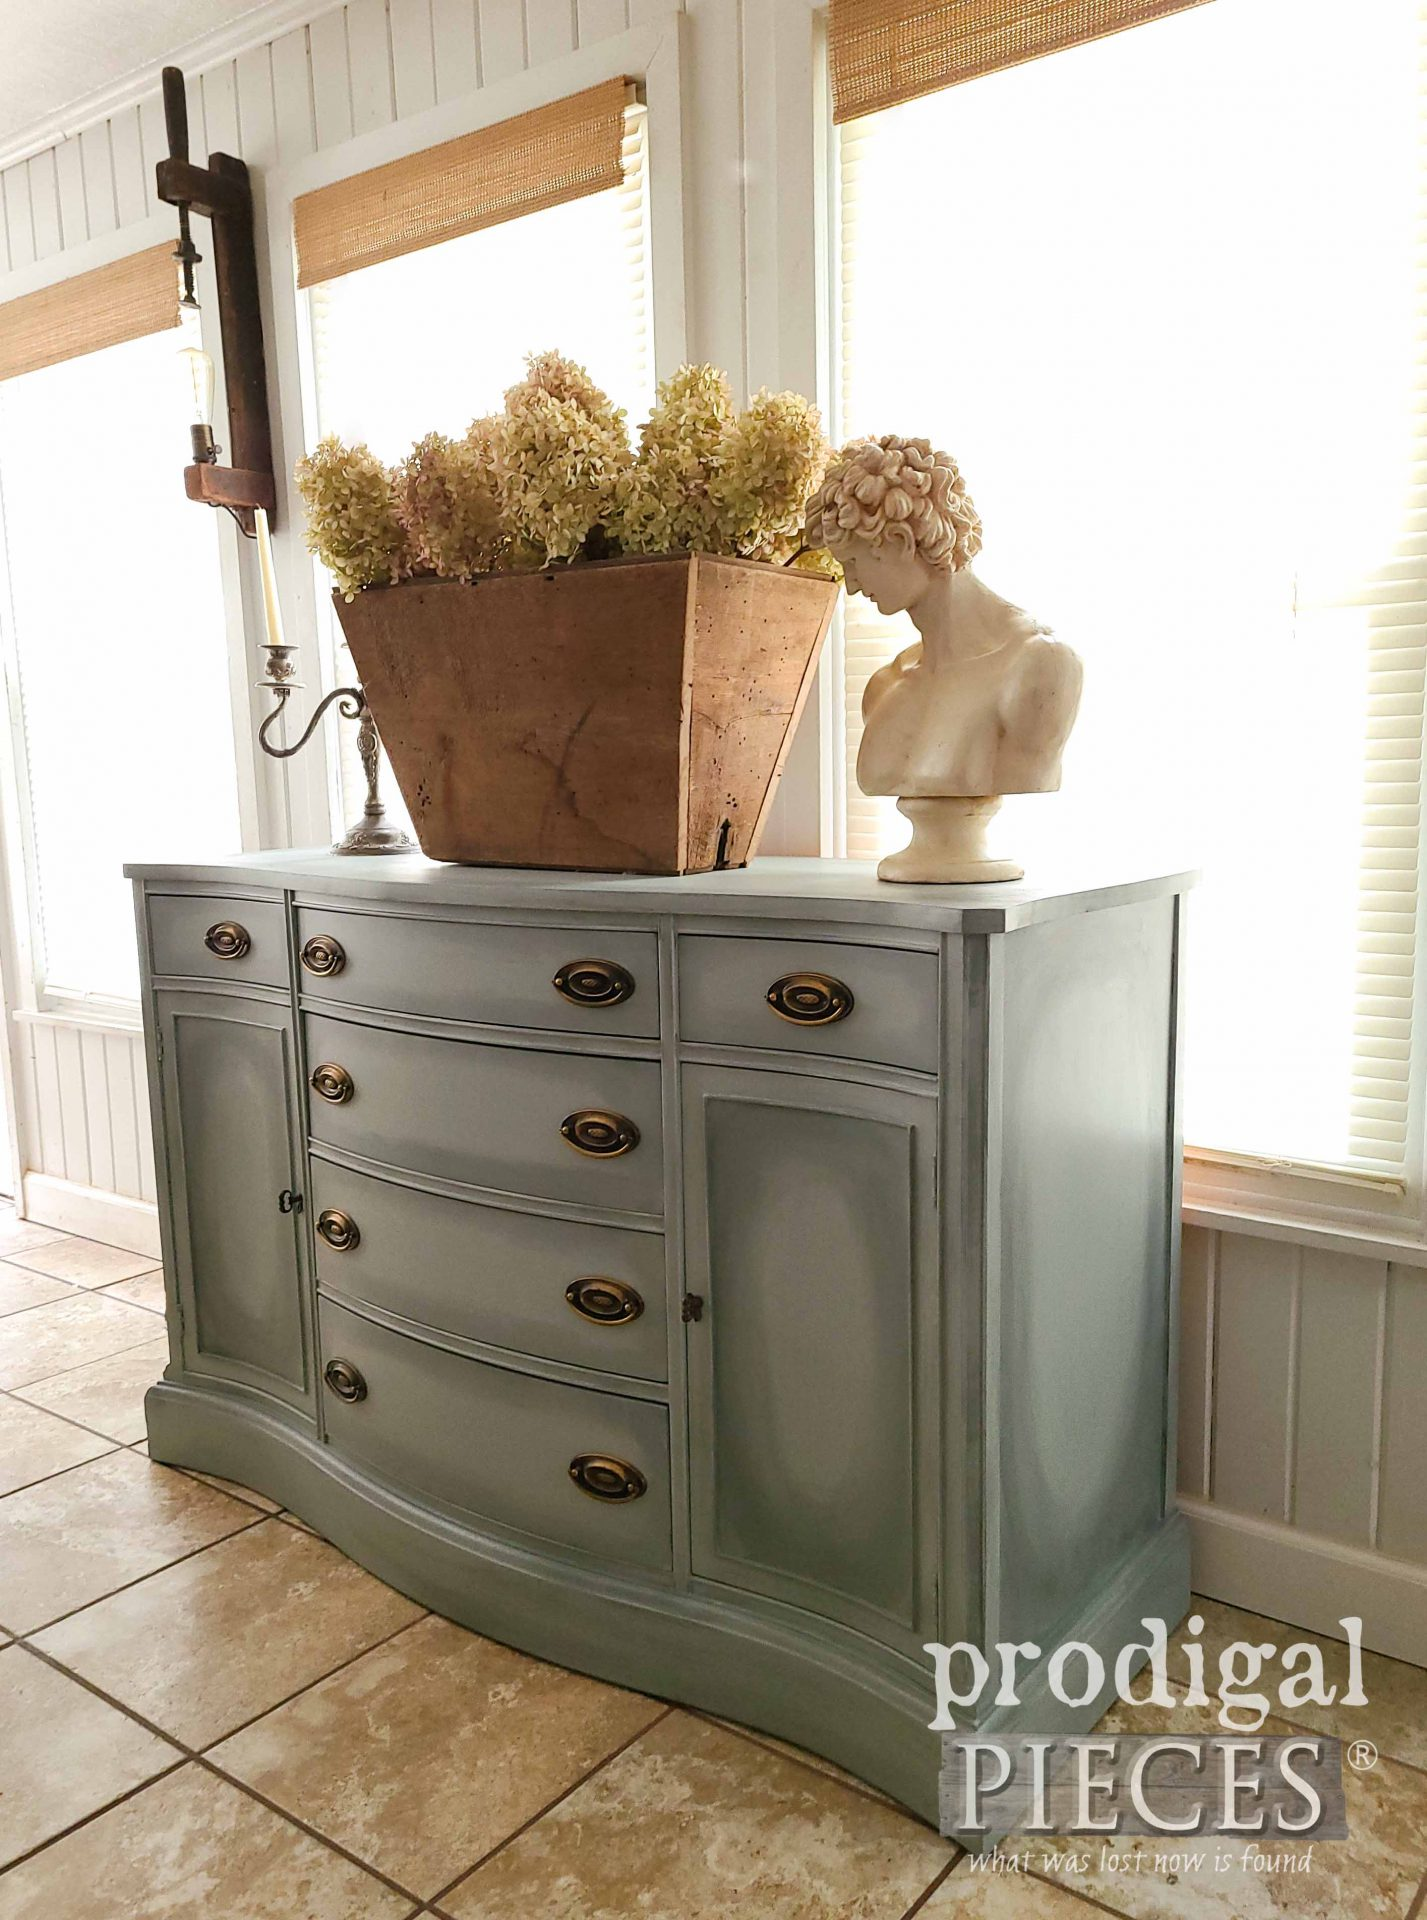 Right Side of Vintage Bassett Buffet Restored by Larissa of Prodigal Pieces | prodigalpieces.com #prodigalpieces #diy #home #homedecor #furniture